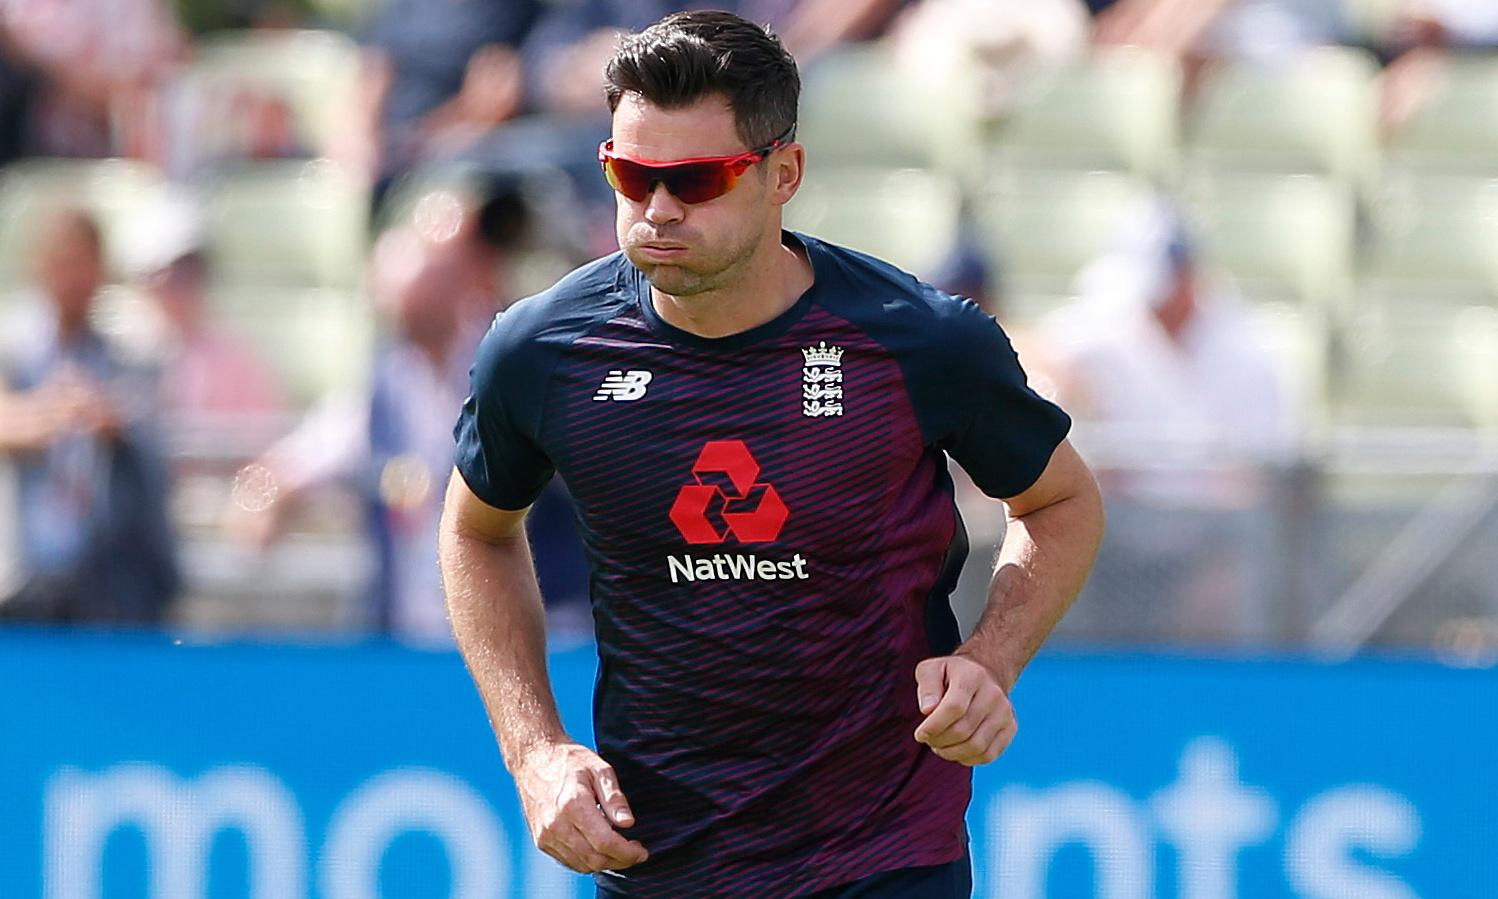 England's Jimmy Anderson still has hope of bowling again in first Ashes Test